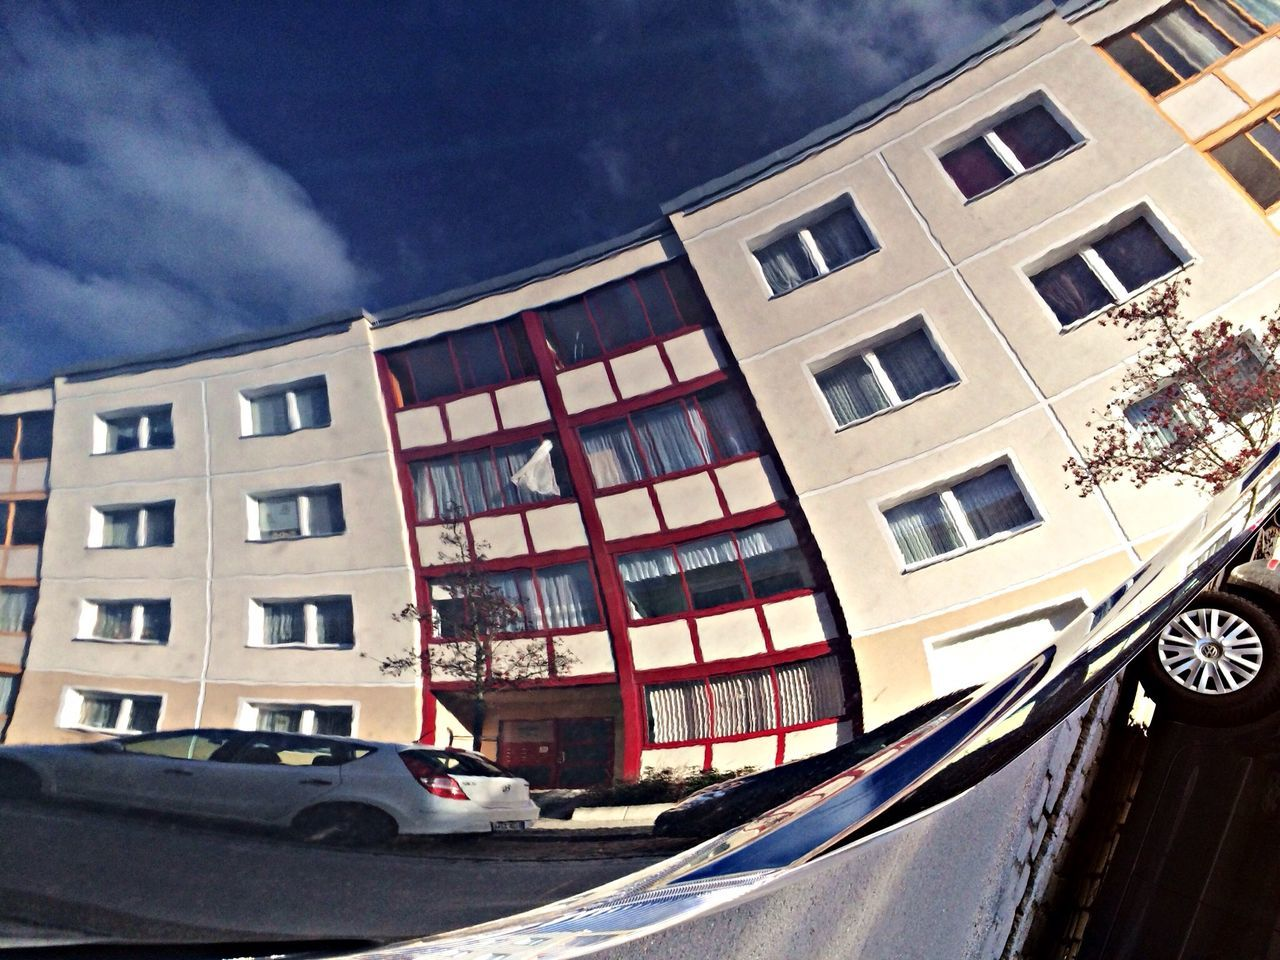 architecture, building exterior, built structure, window, car, outdoors, city, sky, day, no people